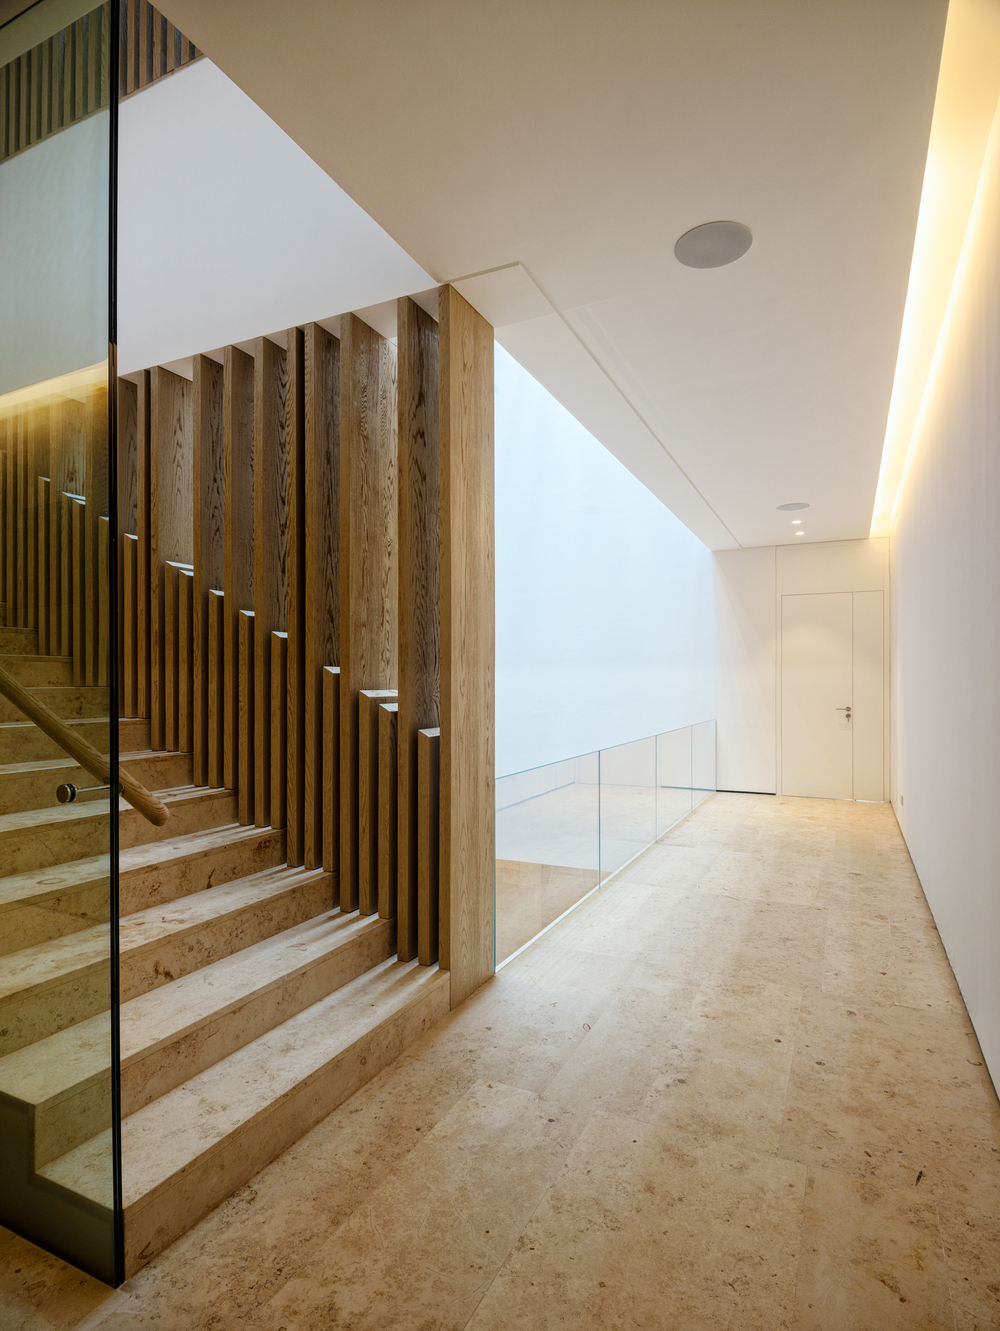 This is a view of the indoor balcony by the staircase landing that has brown marble floors.